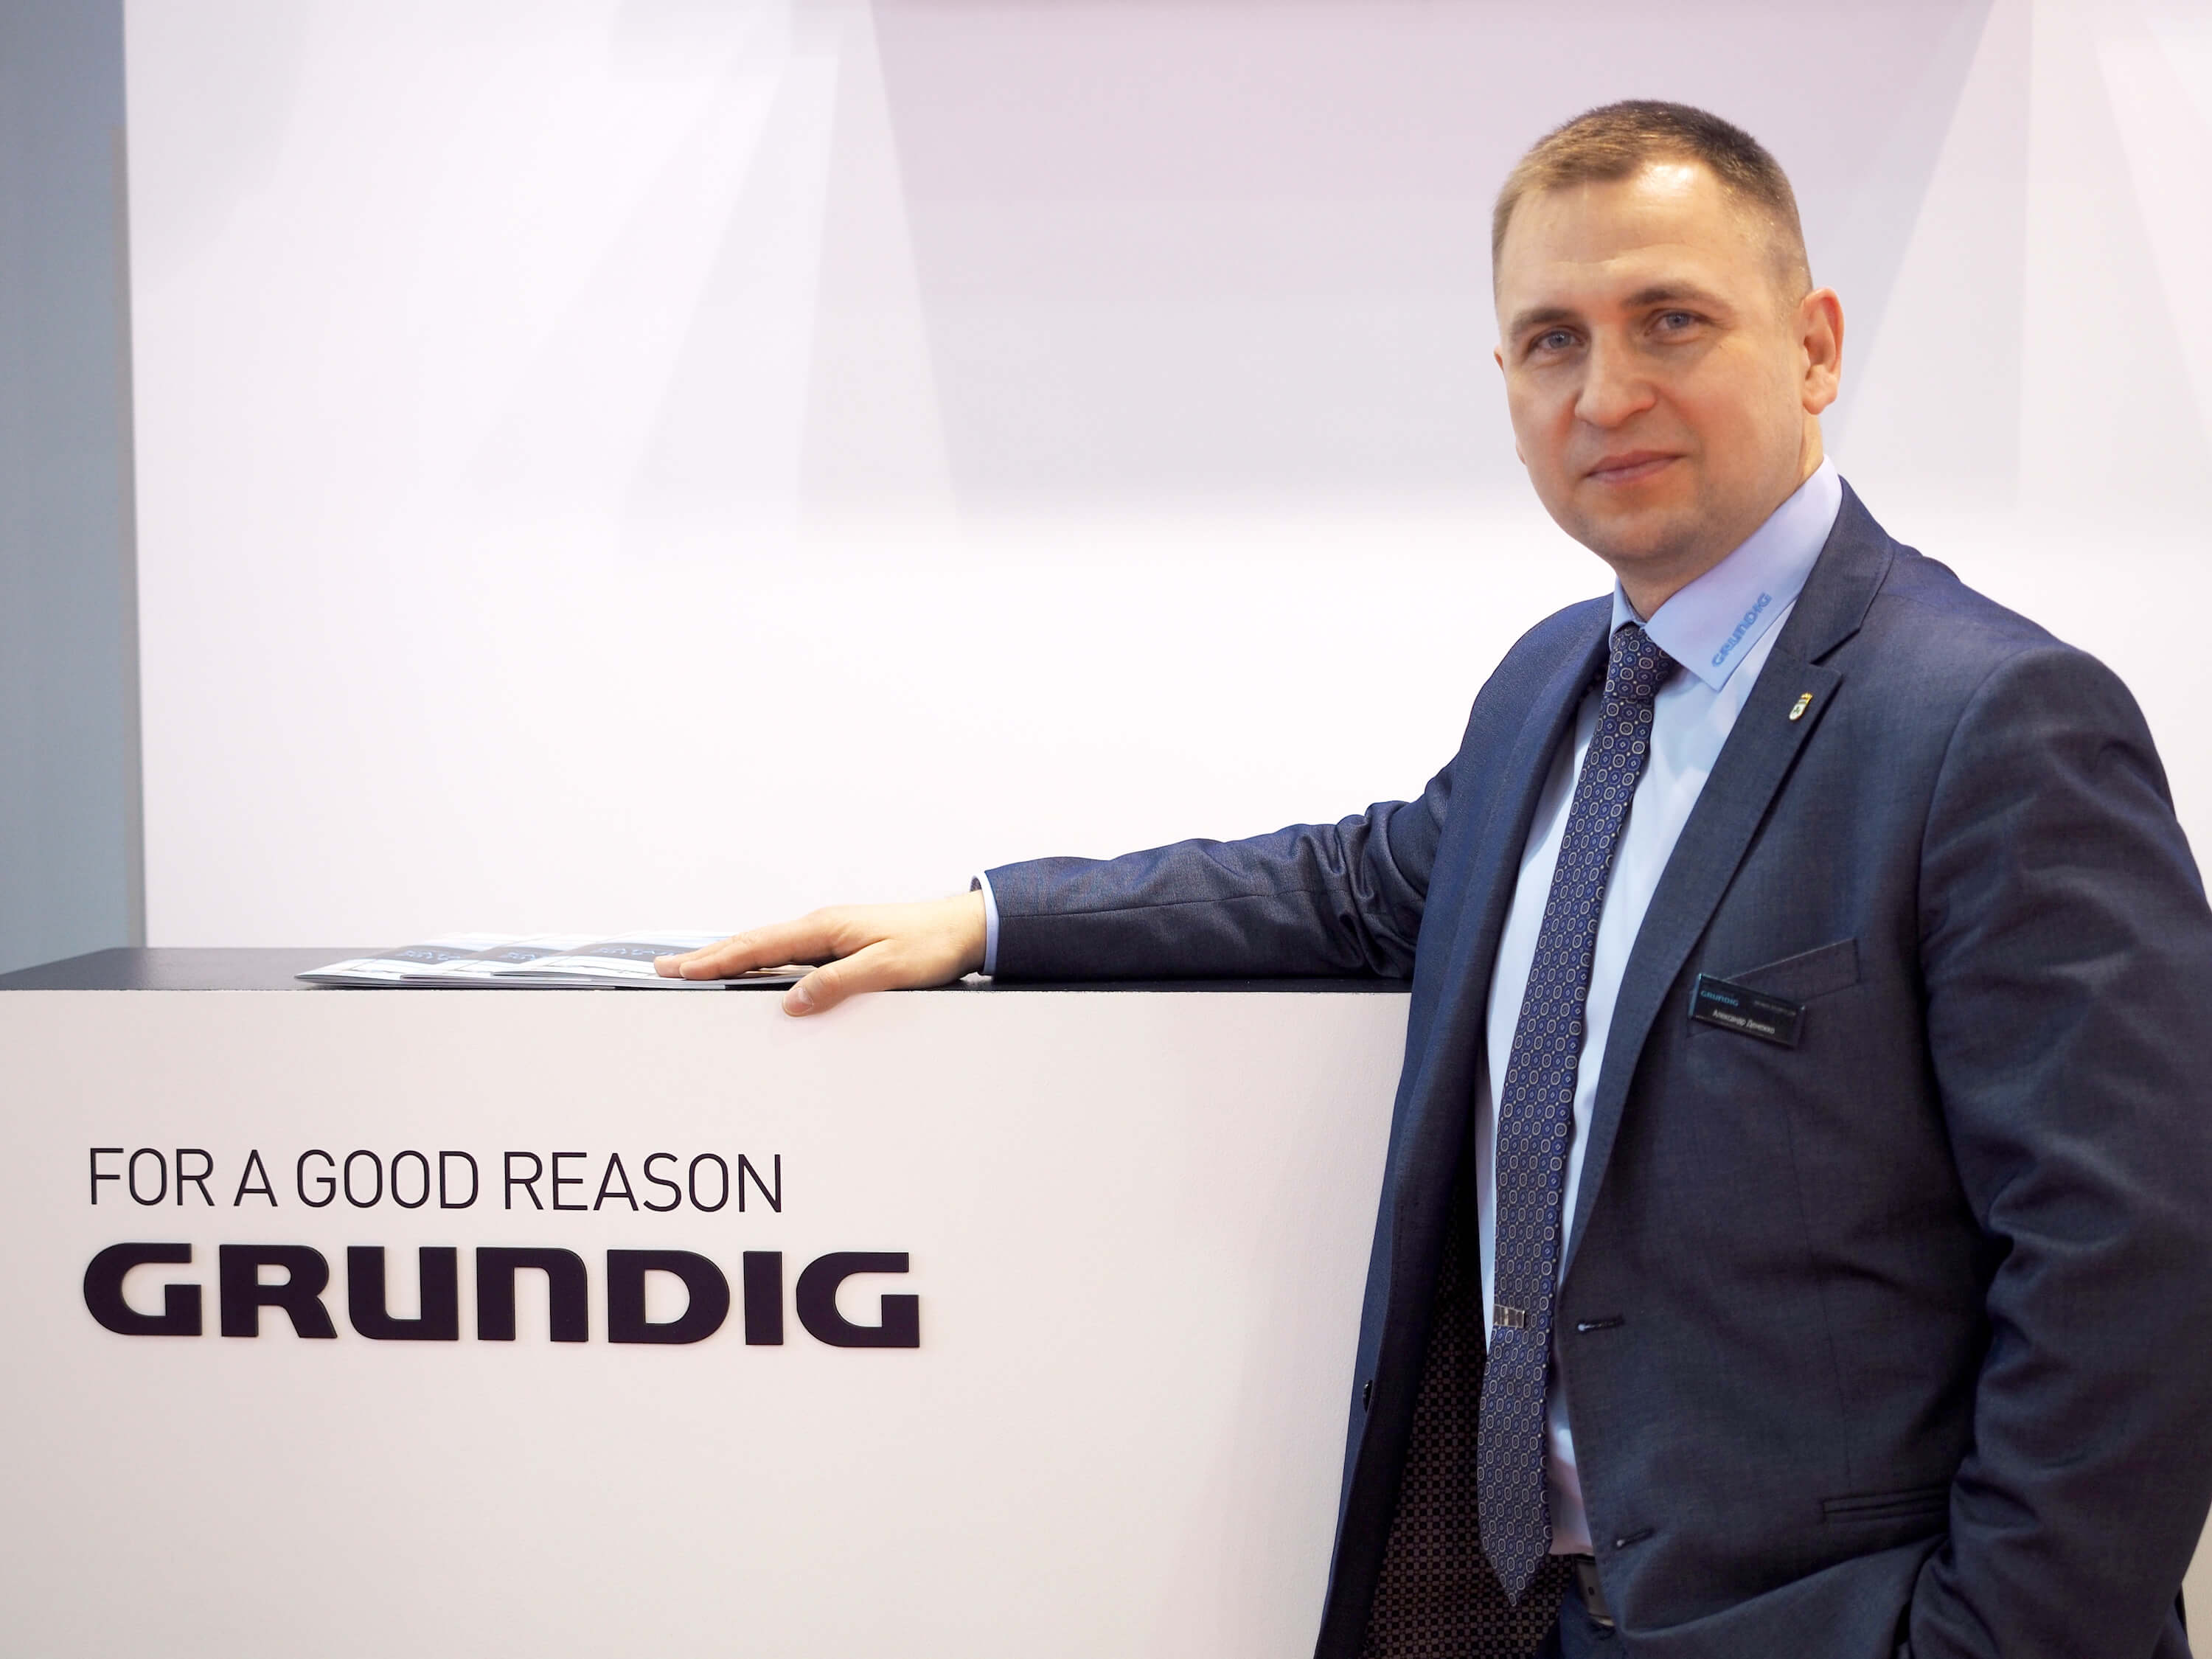 Grundig Becomes Main Sponsor of All-over-IP 2019